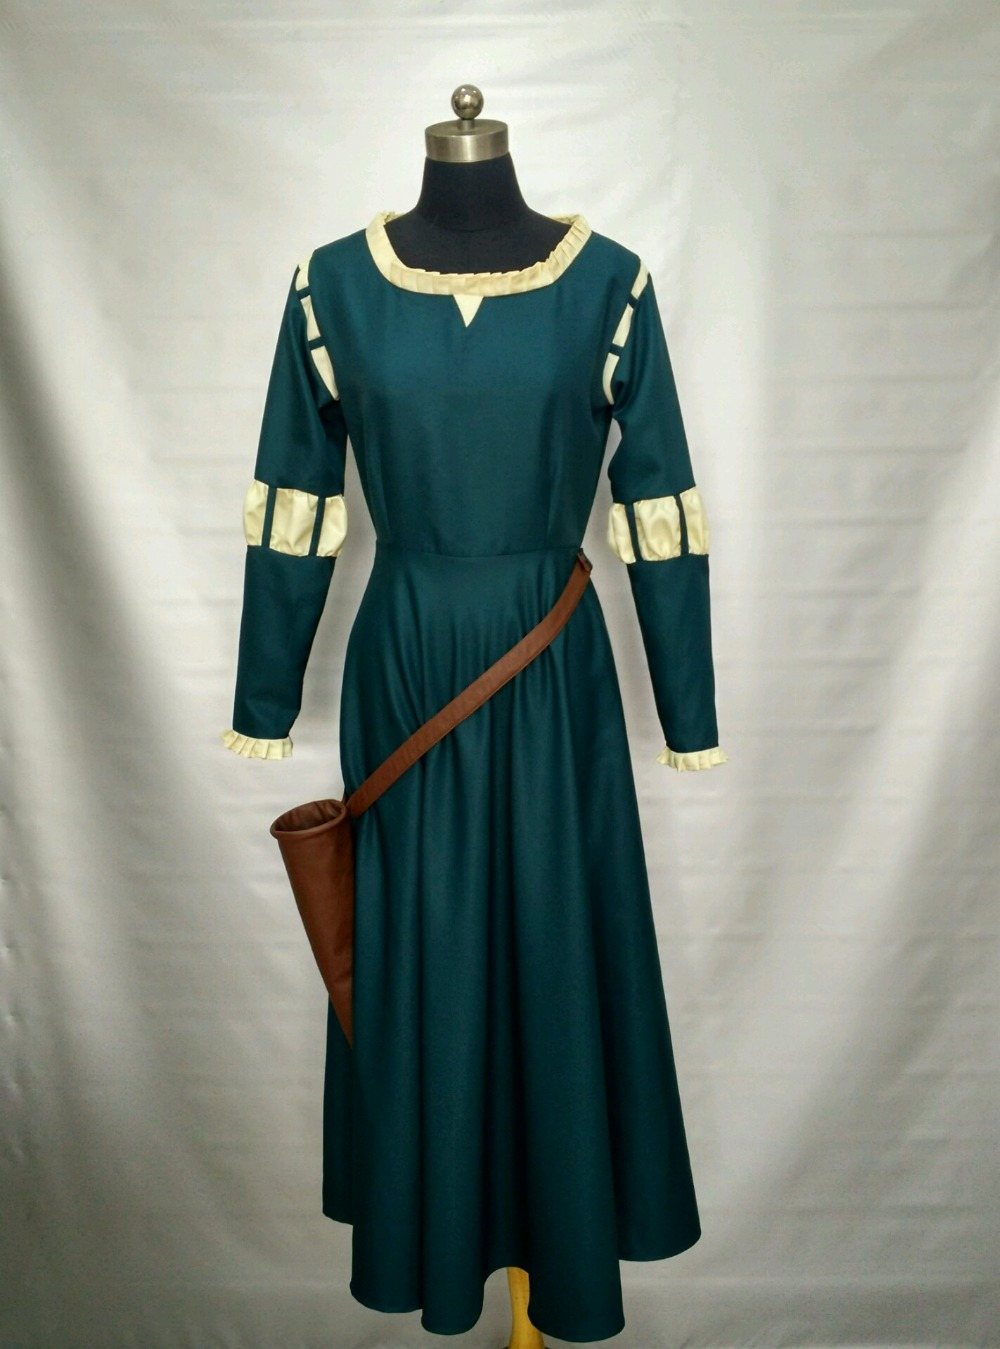 Women Princess Merida Adult Costumes Brave Merida Cosplay Dresses -in Movie u0026 TV costumes from Novelty u0026 Special Use on Aliexpress.com | Alibaba Group & Women Princess Merida Adult Costumes Brave Merida Cosplay Dresses ...